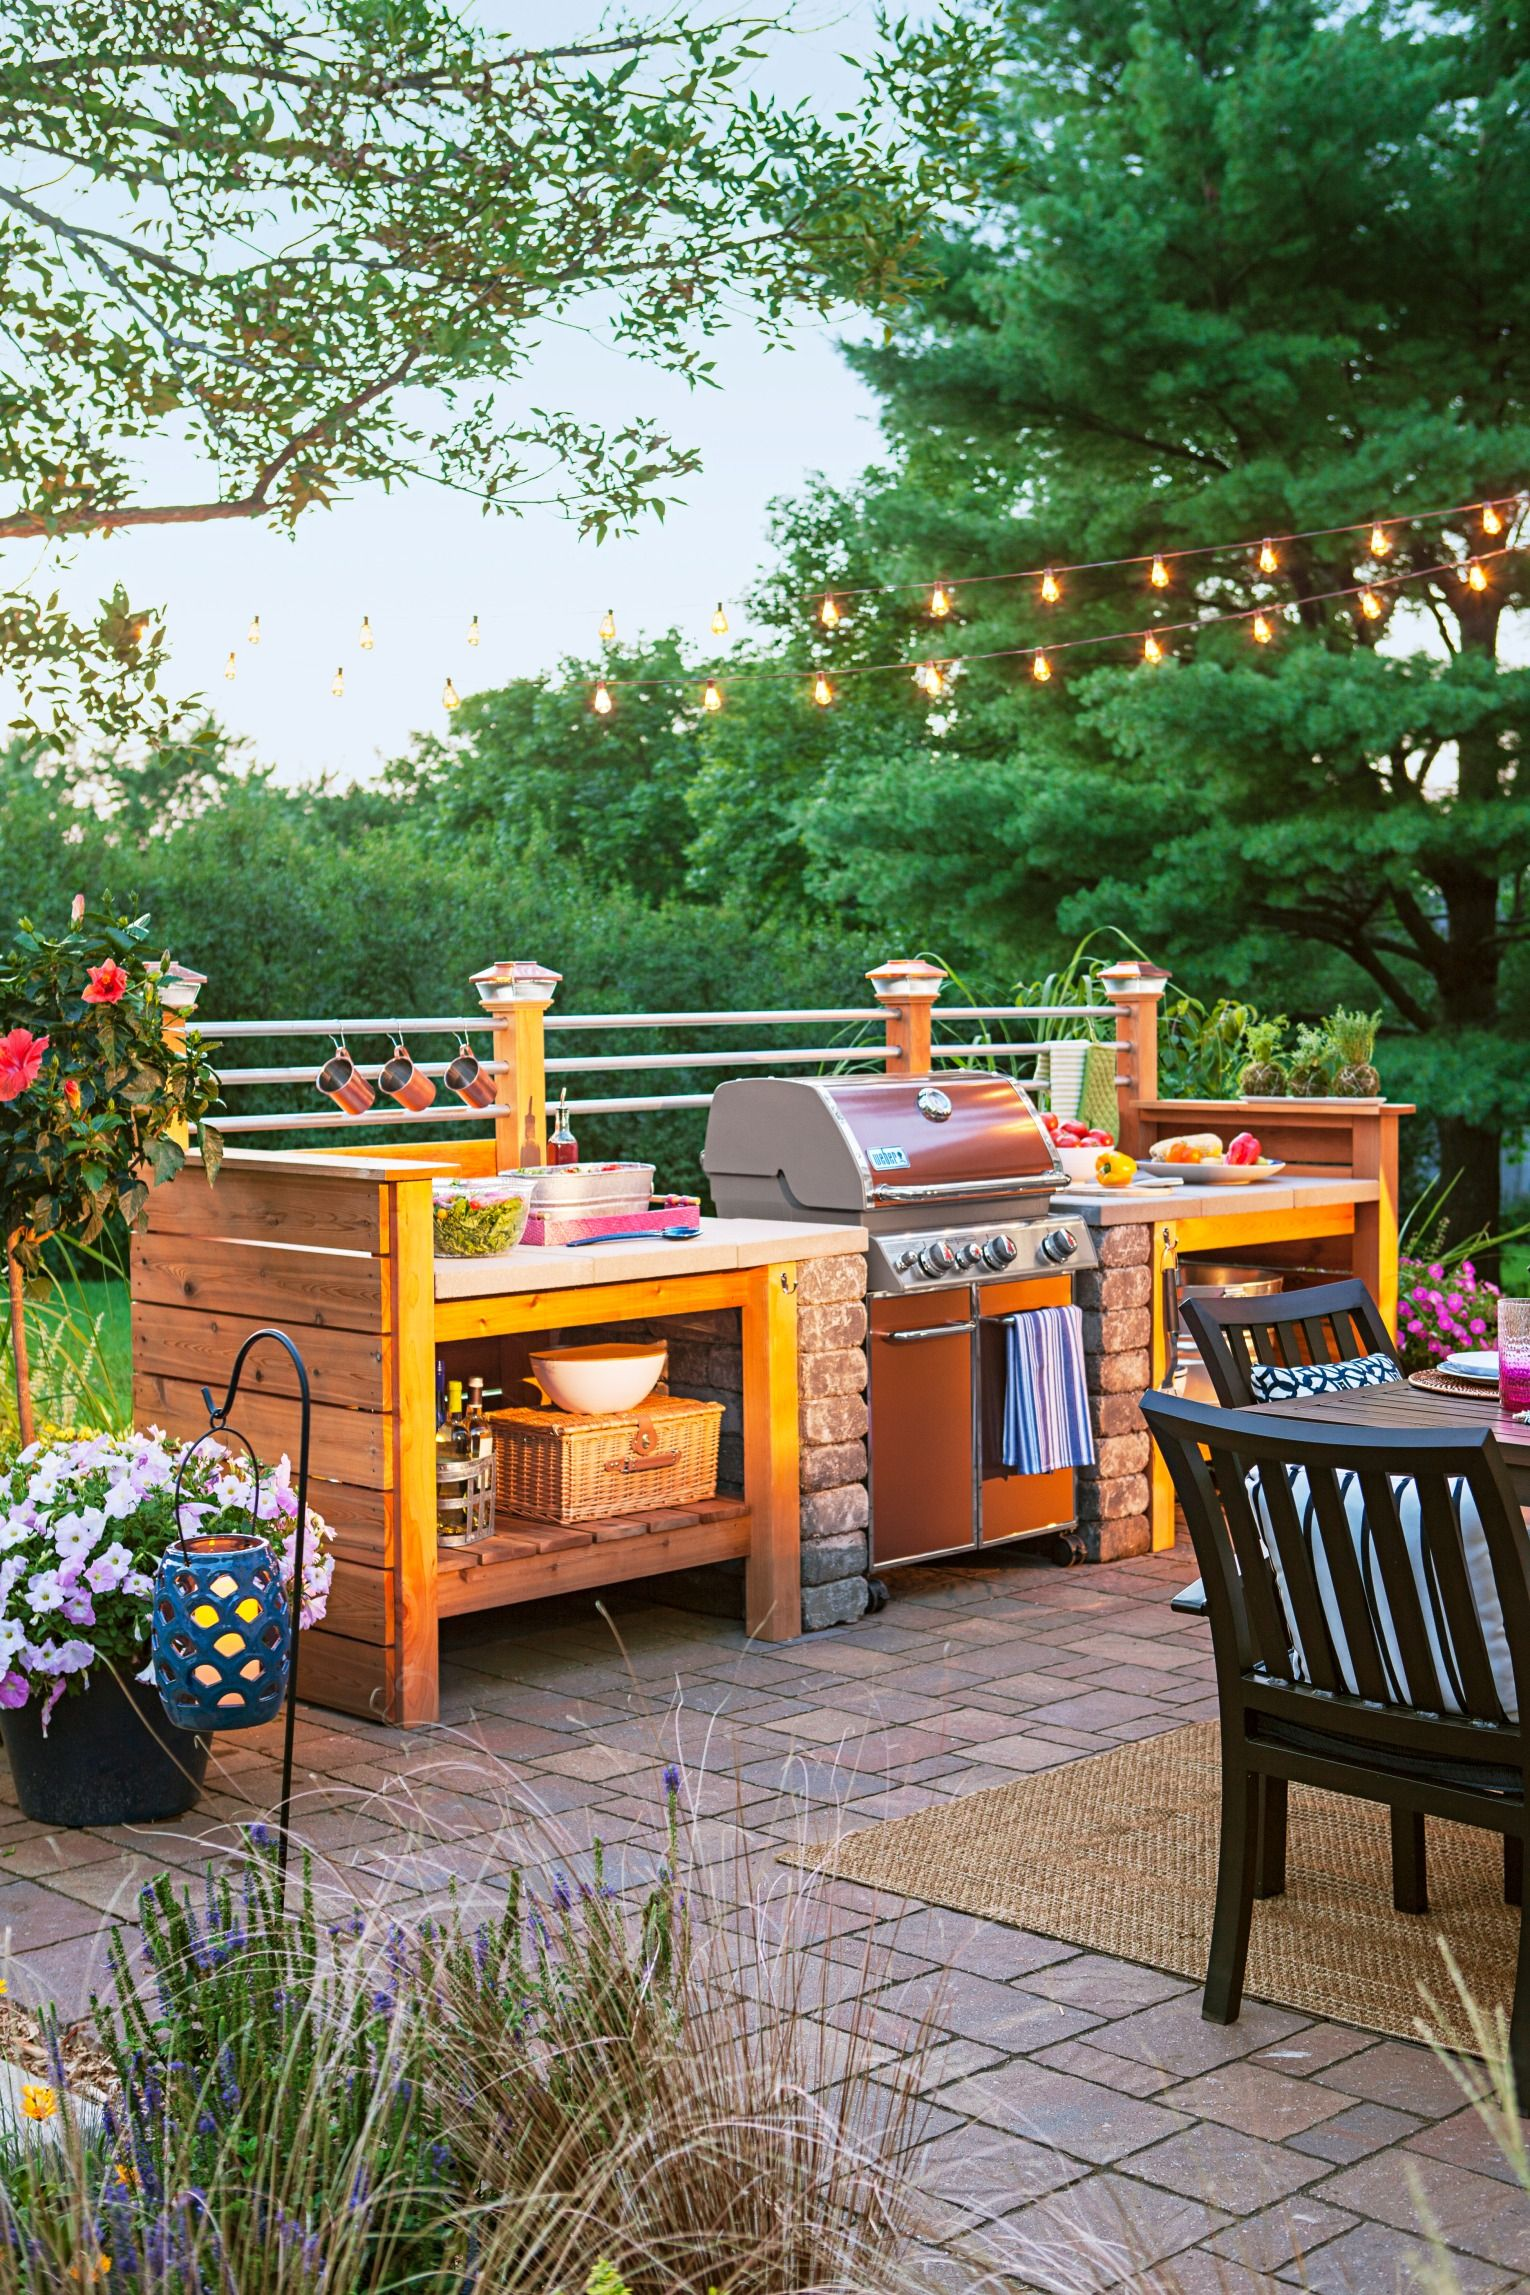 Get The Look Of An Expensive Outdoor Kitchen For Less Surround A Gas Grill With Modular Diy Cedar Structure That You Can Customize To Fit Your Backyard